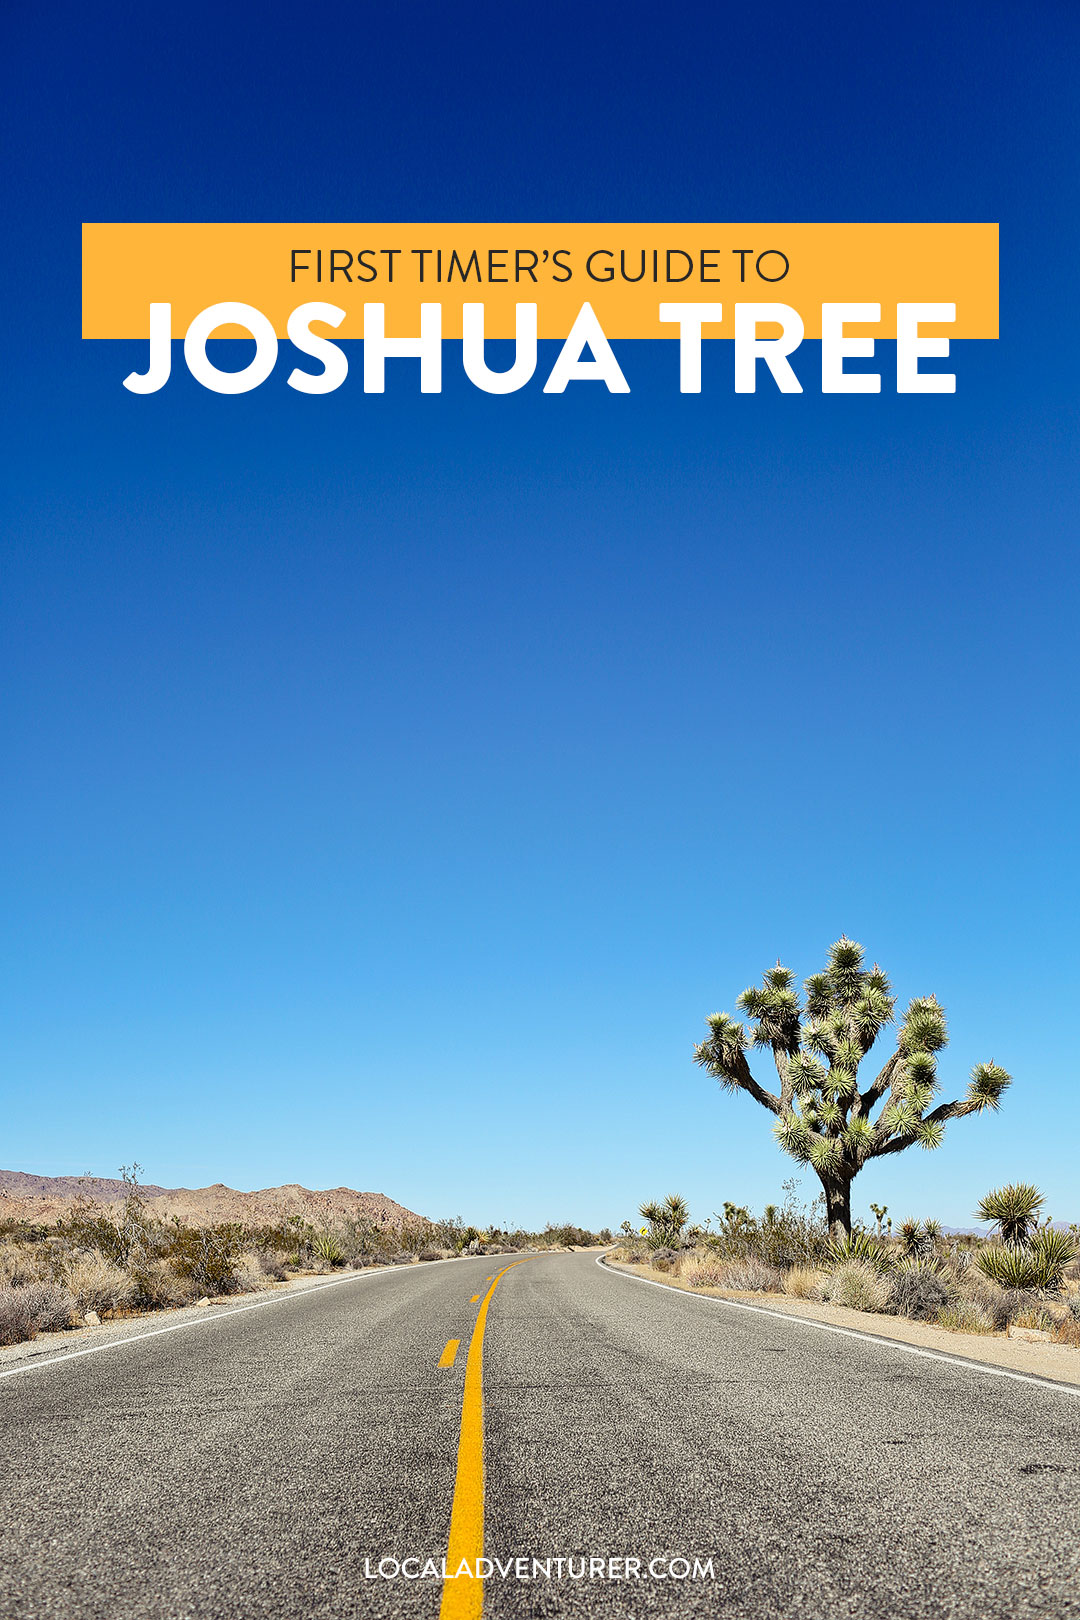 11 Amazing Things to Do in Joshua Tree National Park - First Timer's Guide and Tips